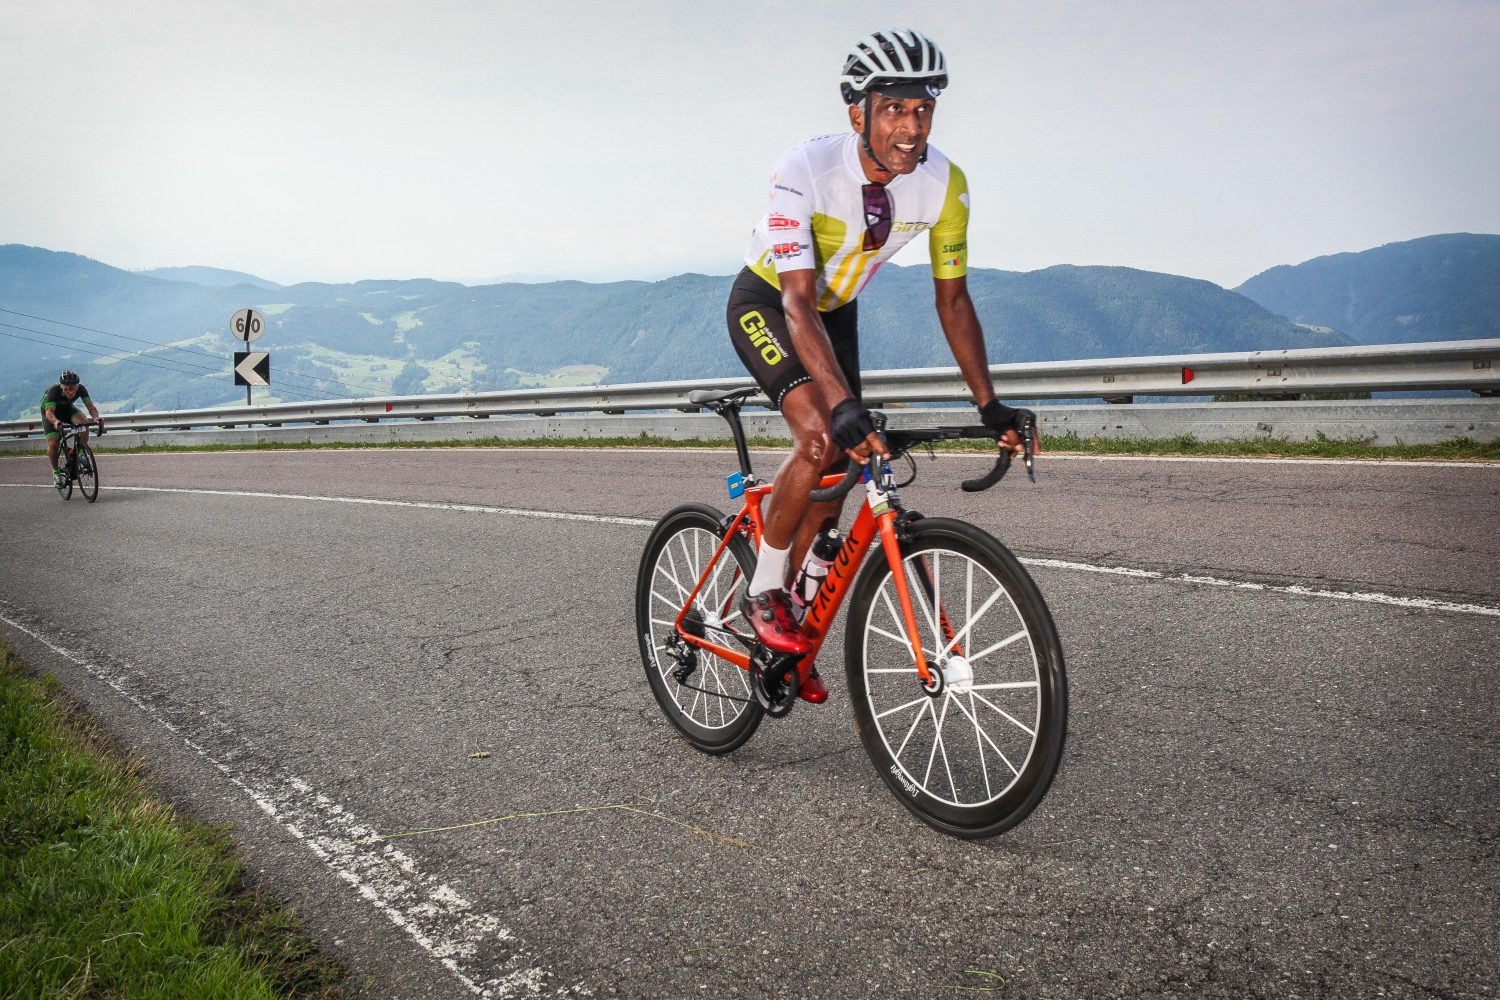 Amateur Cycle Racing in Europe